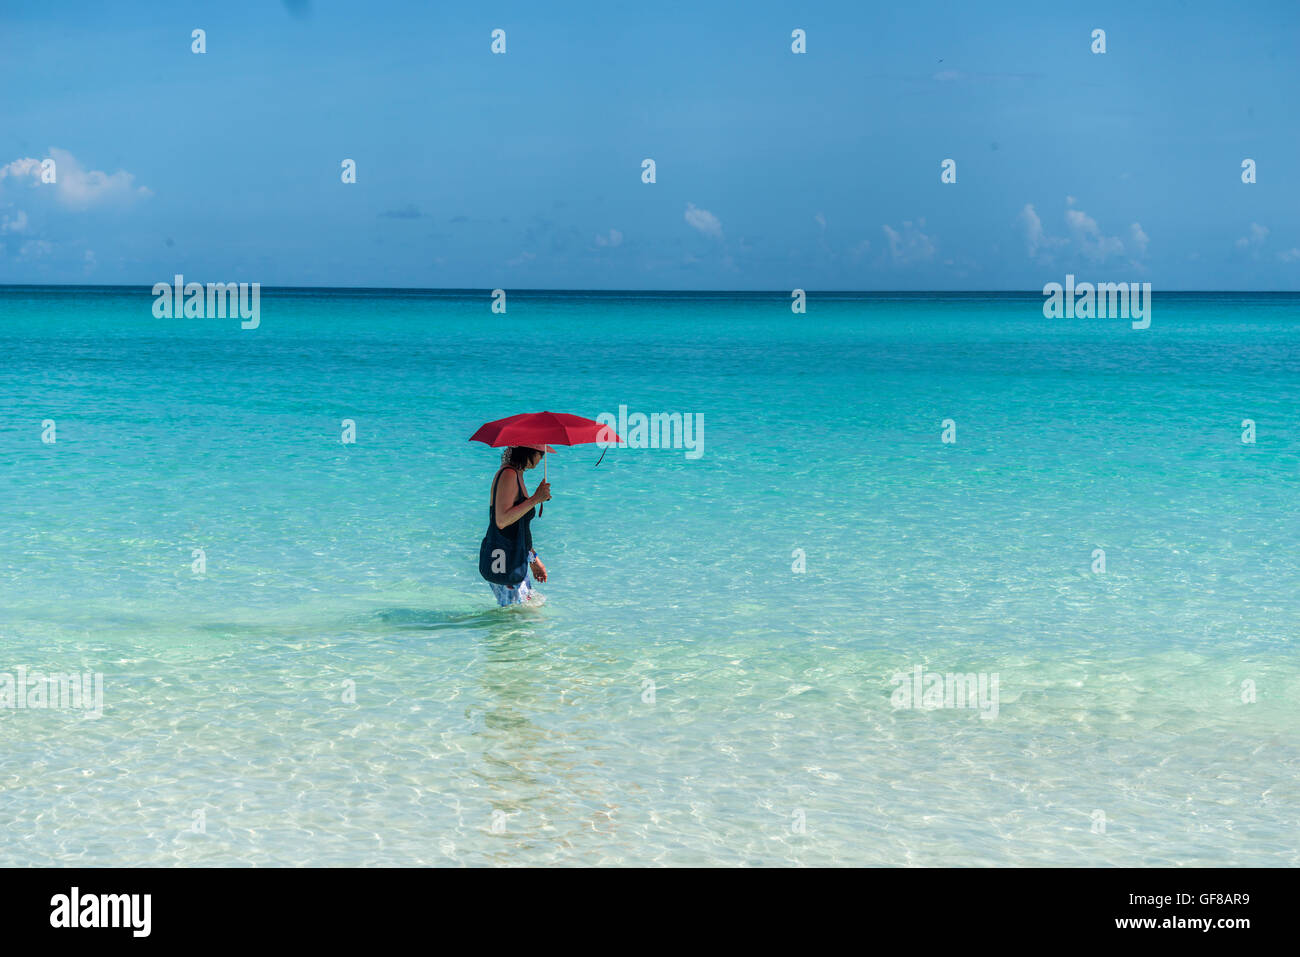 woman walking into the sea water with red umbrella in the Caribbean - Stock Image